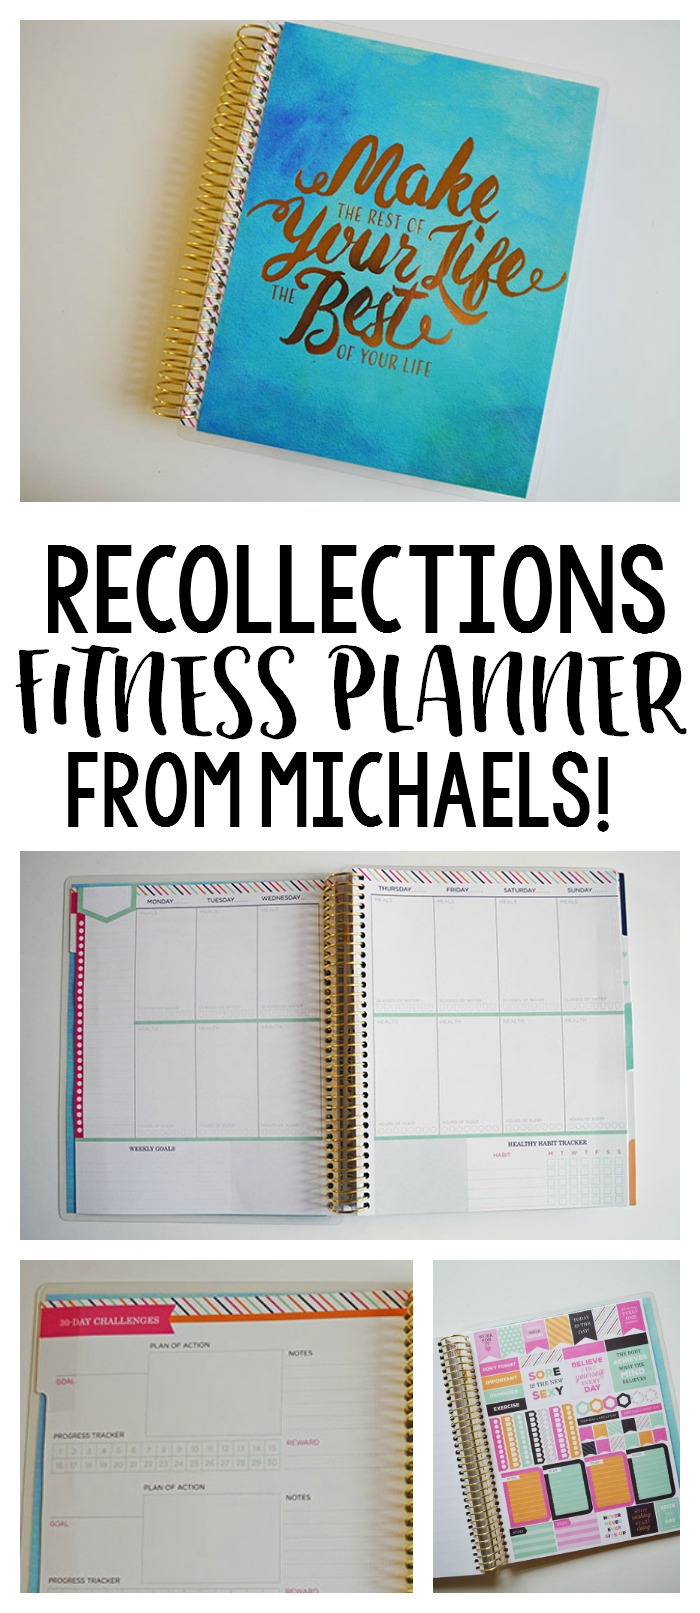 The Recollections Fitness Planner - I Am In LOVE!